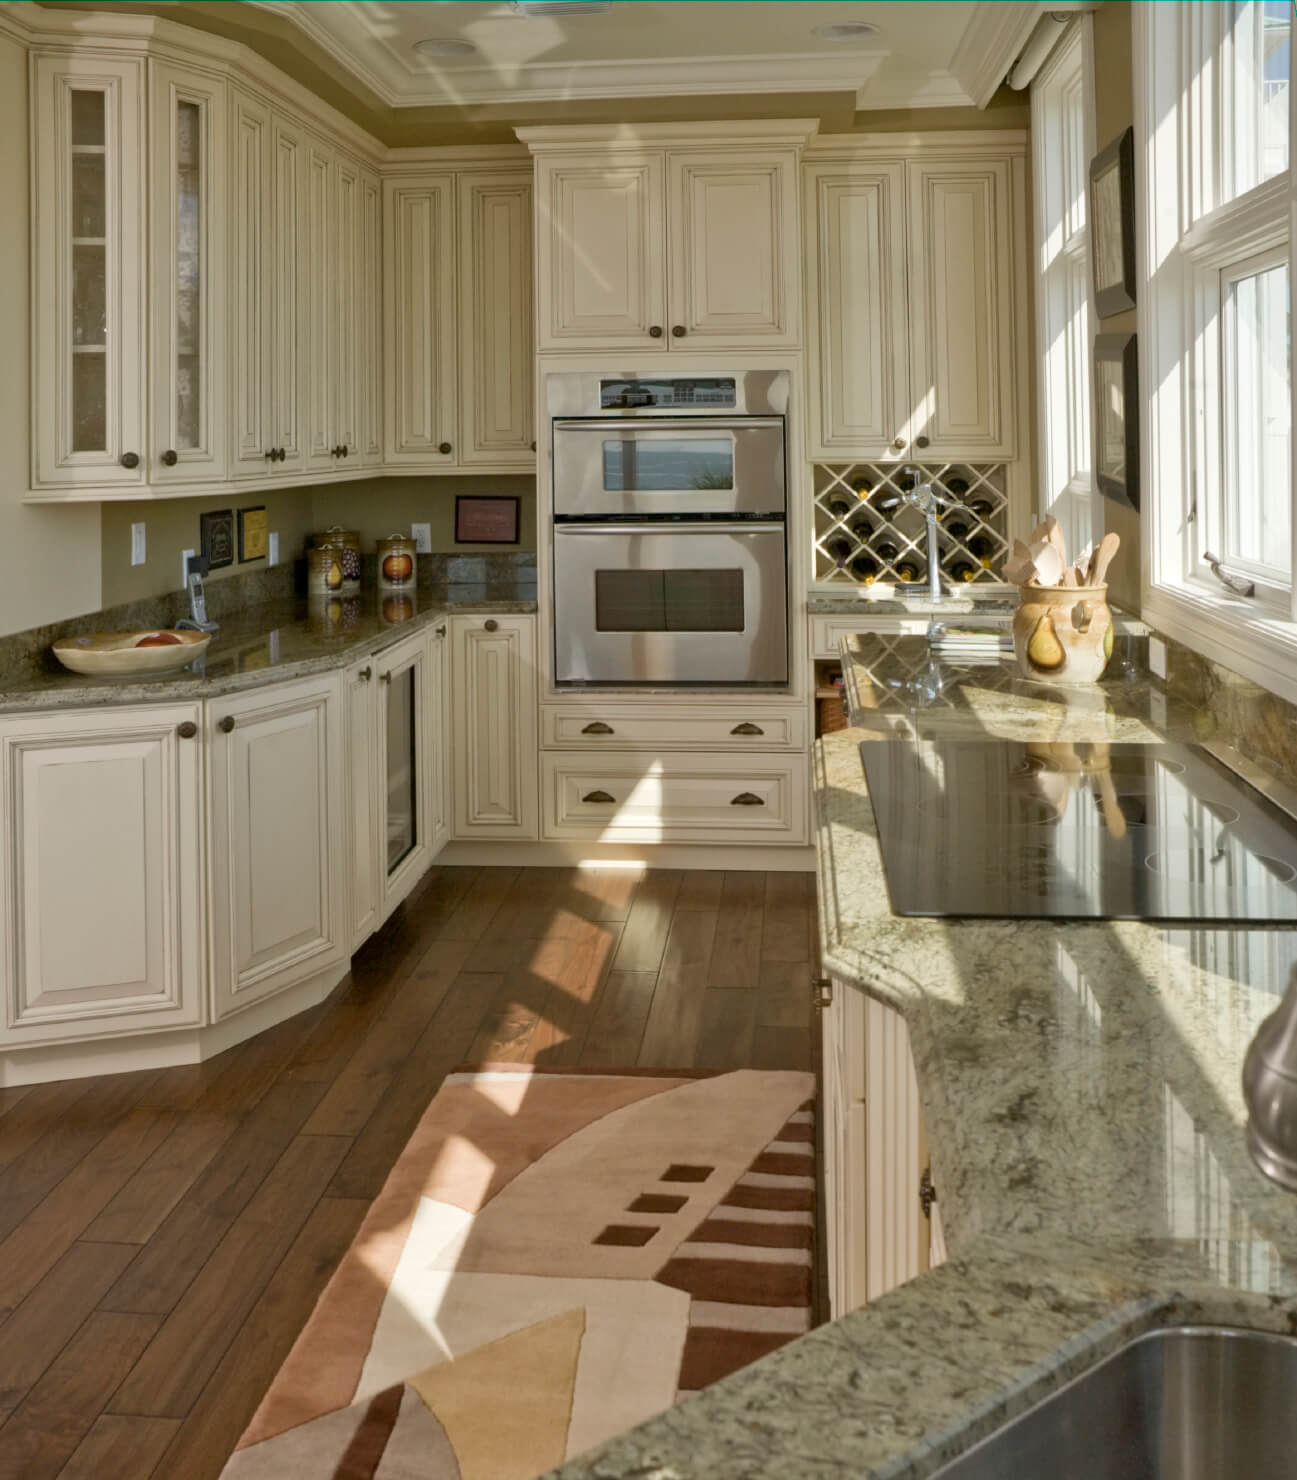 white kitchen designs pictures cabinets kitchen Treated white cabinets add to the old fashioned look in this compact kitchen featuring geometric rug